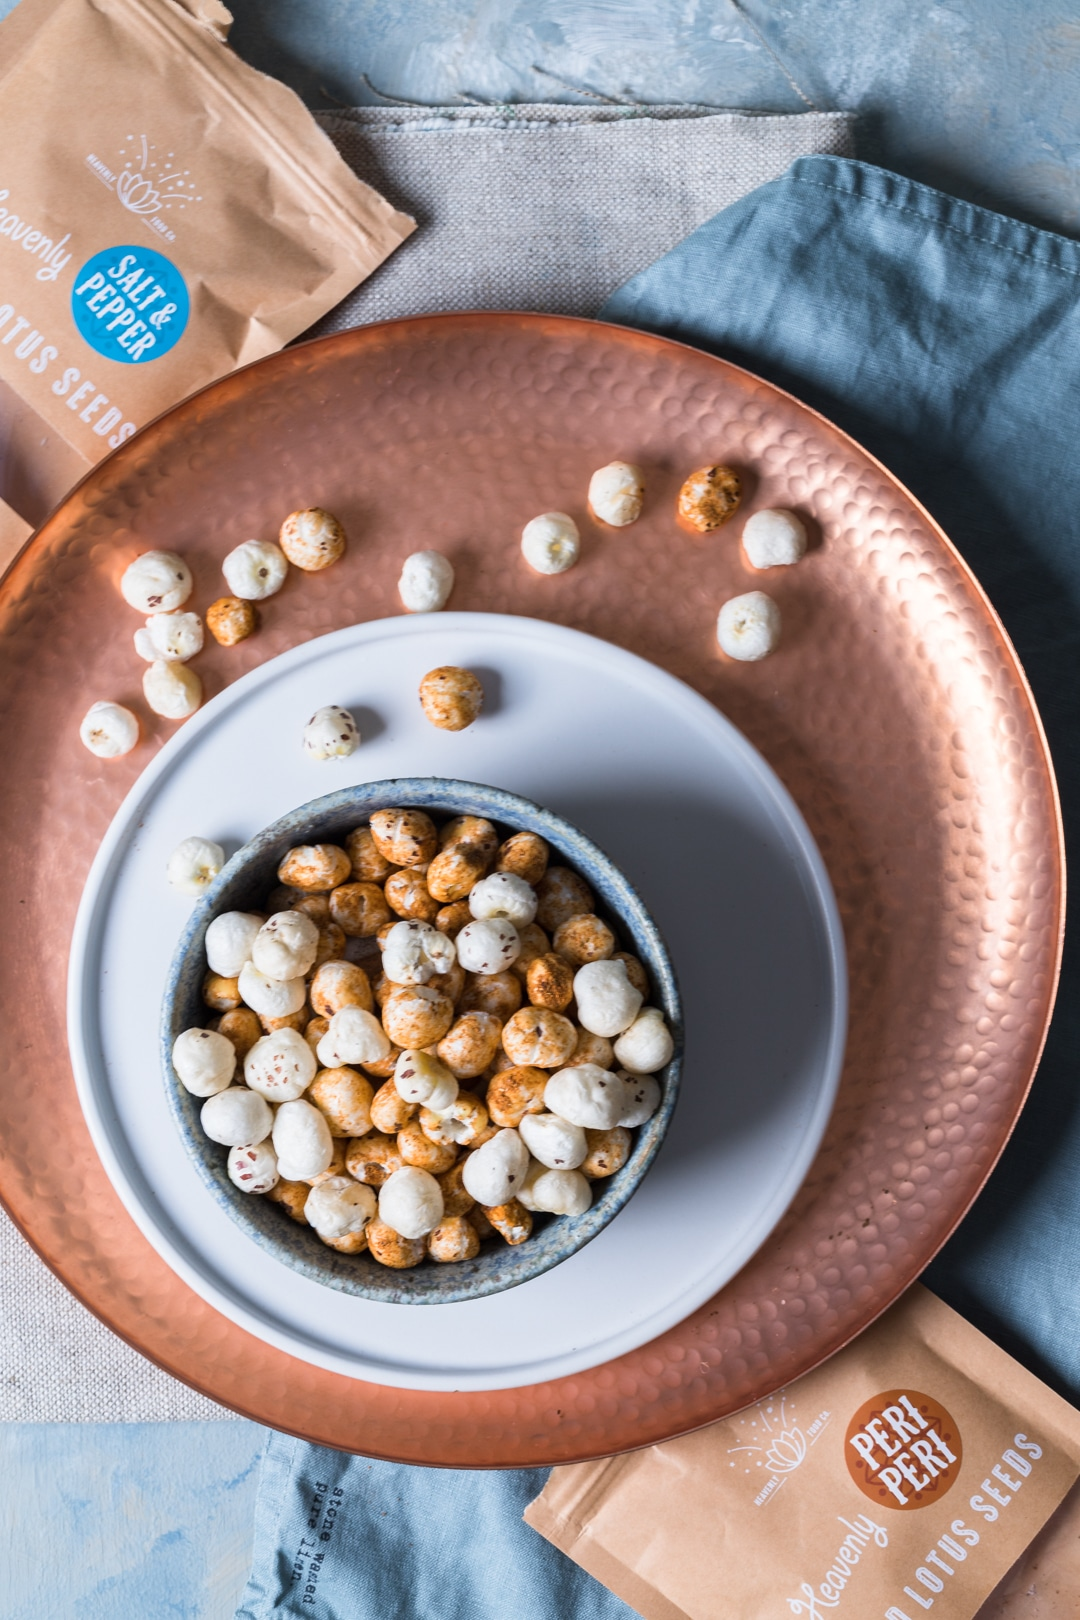 Image for Heavenly Food Company salt and pepper popped lotus seed